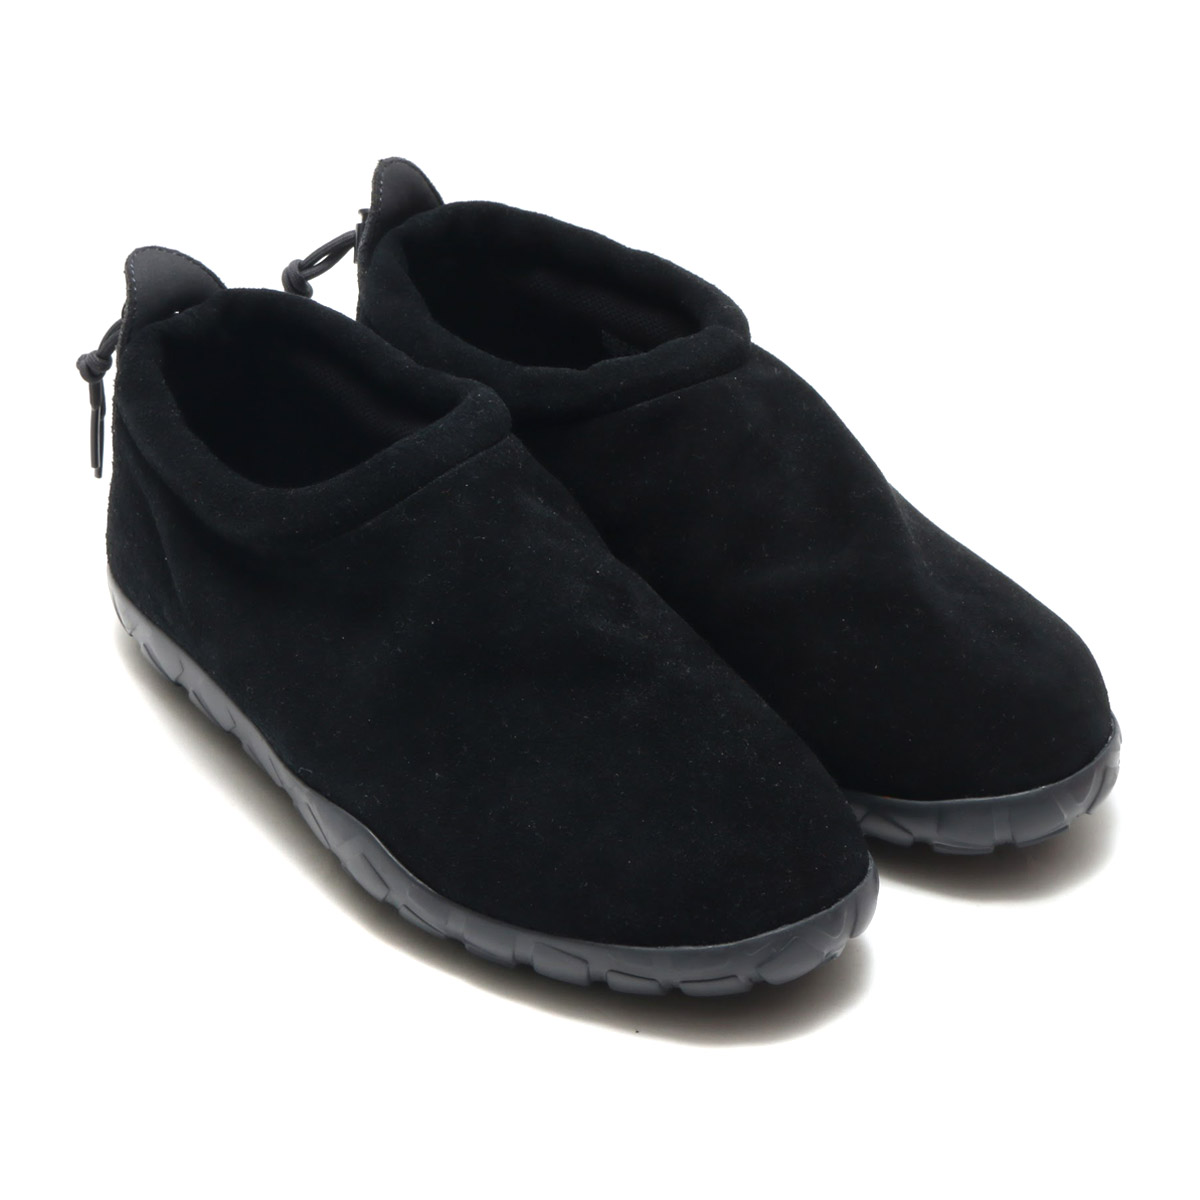 the latest 1ab79 3693b The appearance of the OG-like color where is good from AIR MOC ULTRA in  fall and winter. EASY ON EASY OFF model to match various styles.